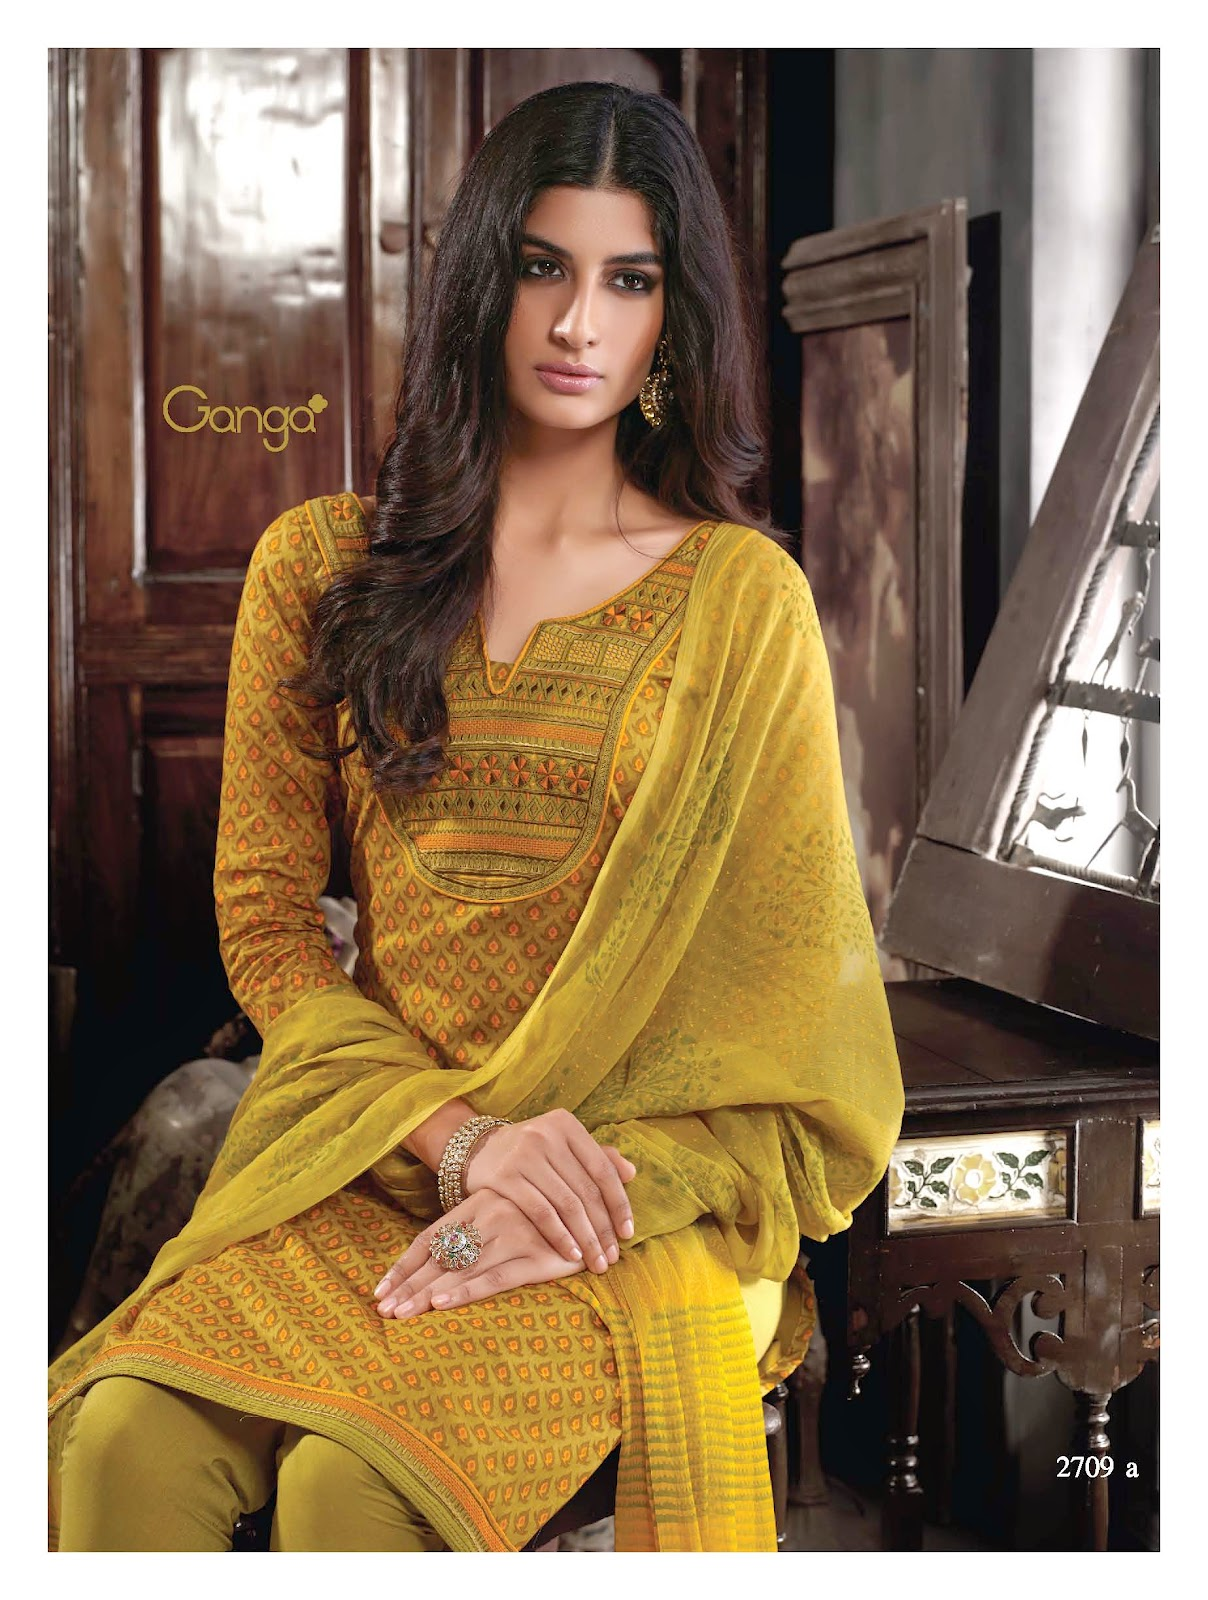 dsquare clothing ganga saraa cotton unstitched material posted by deepak srinivasan at 03 14